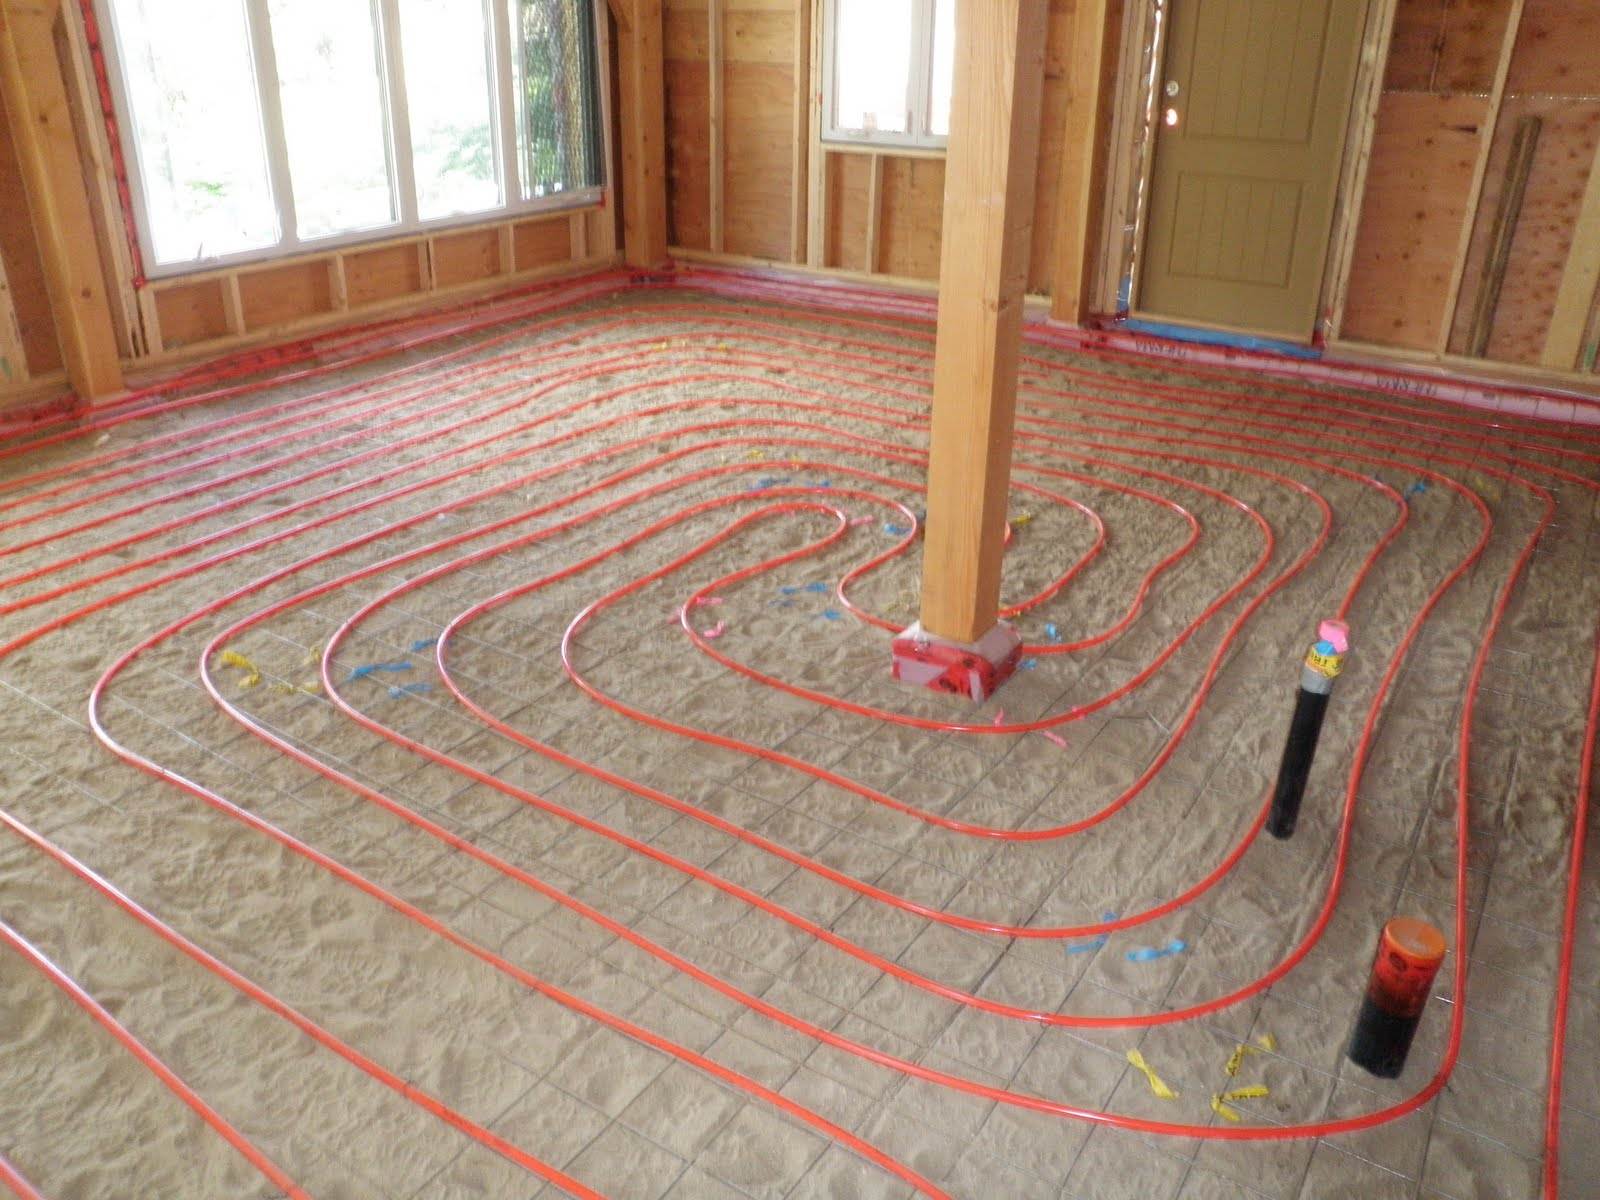 Kootenay house radiant floor heating Radiant floors